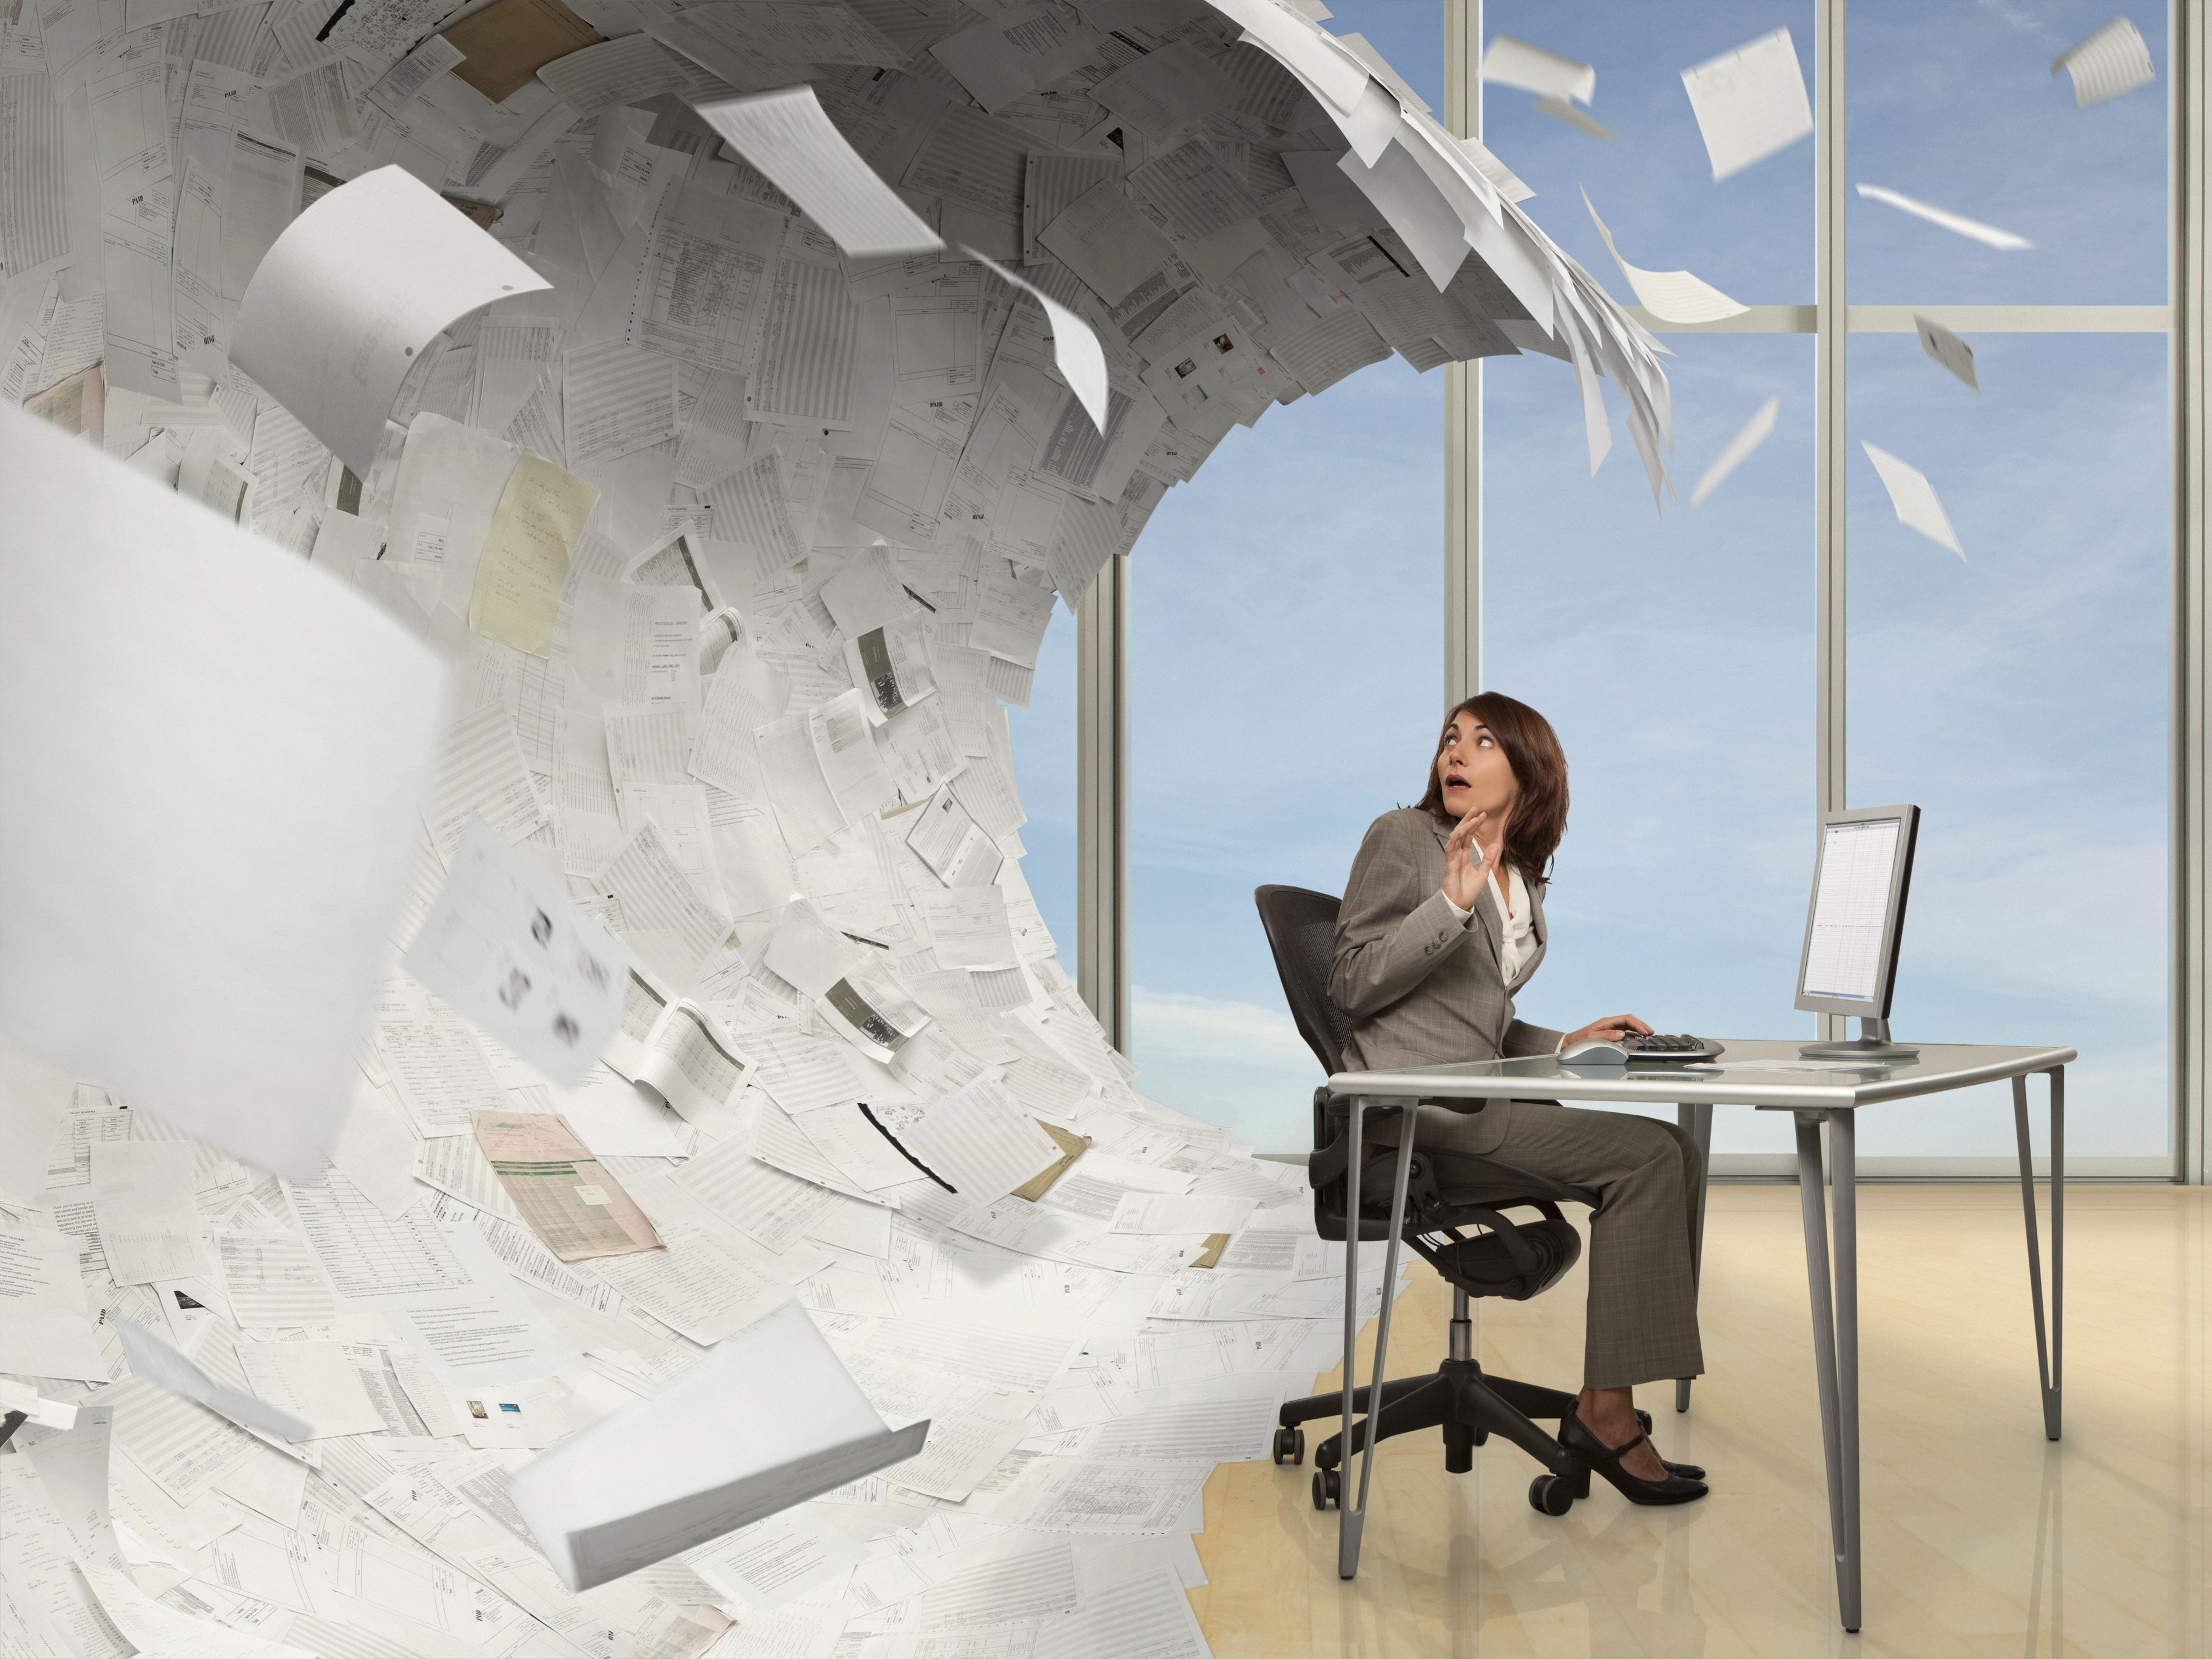 Wave of paperwork about to crash on mixed race businesswoman